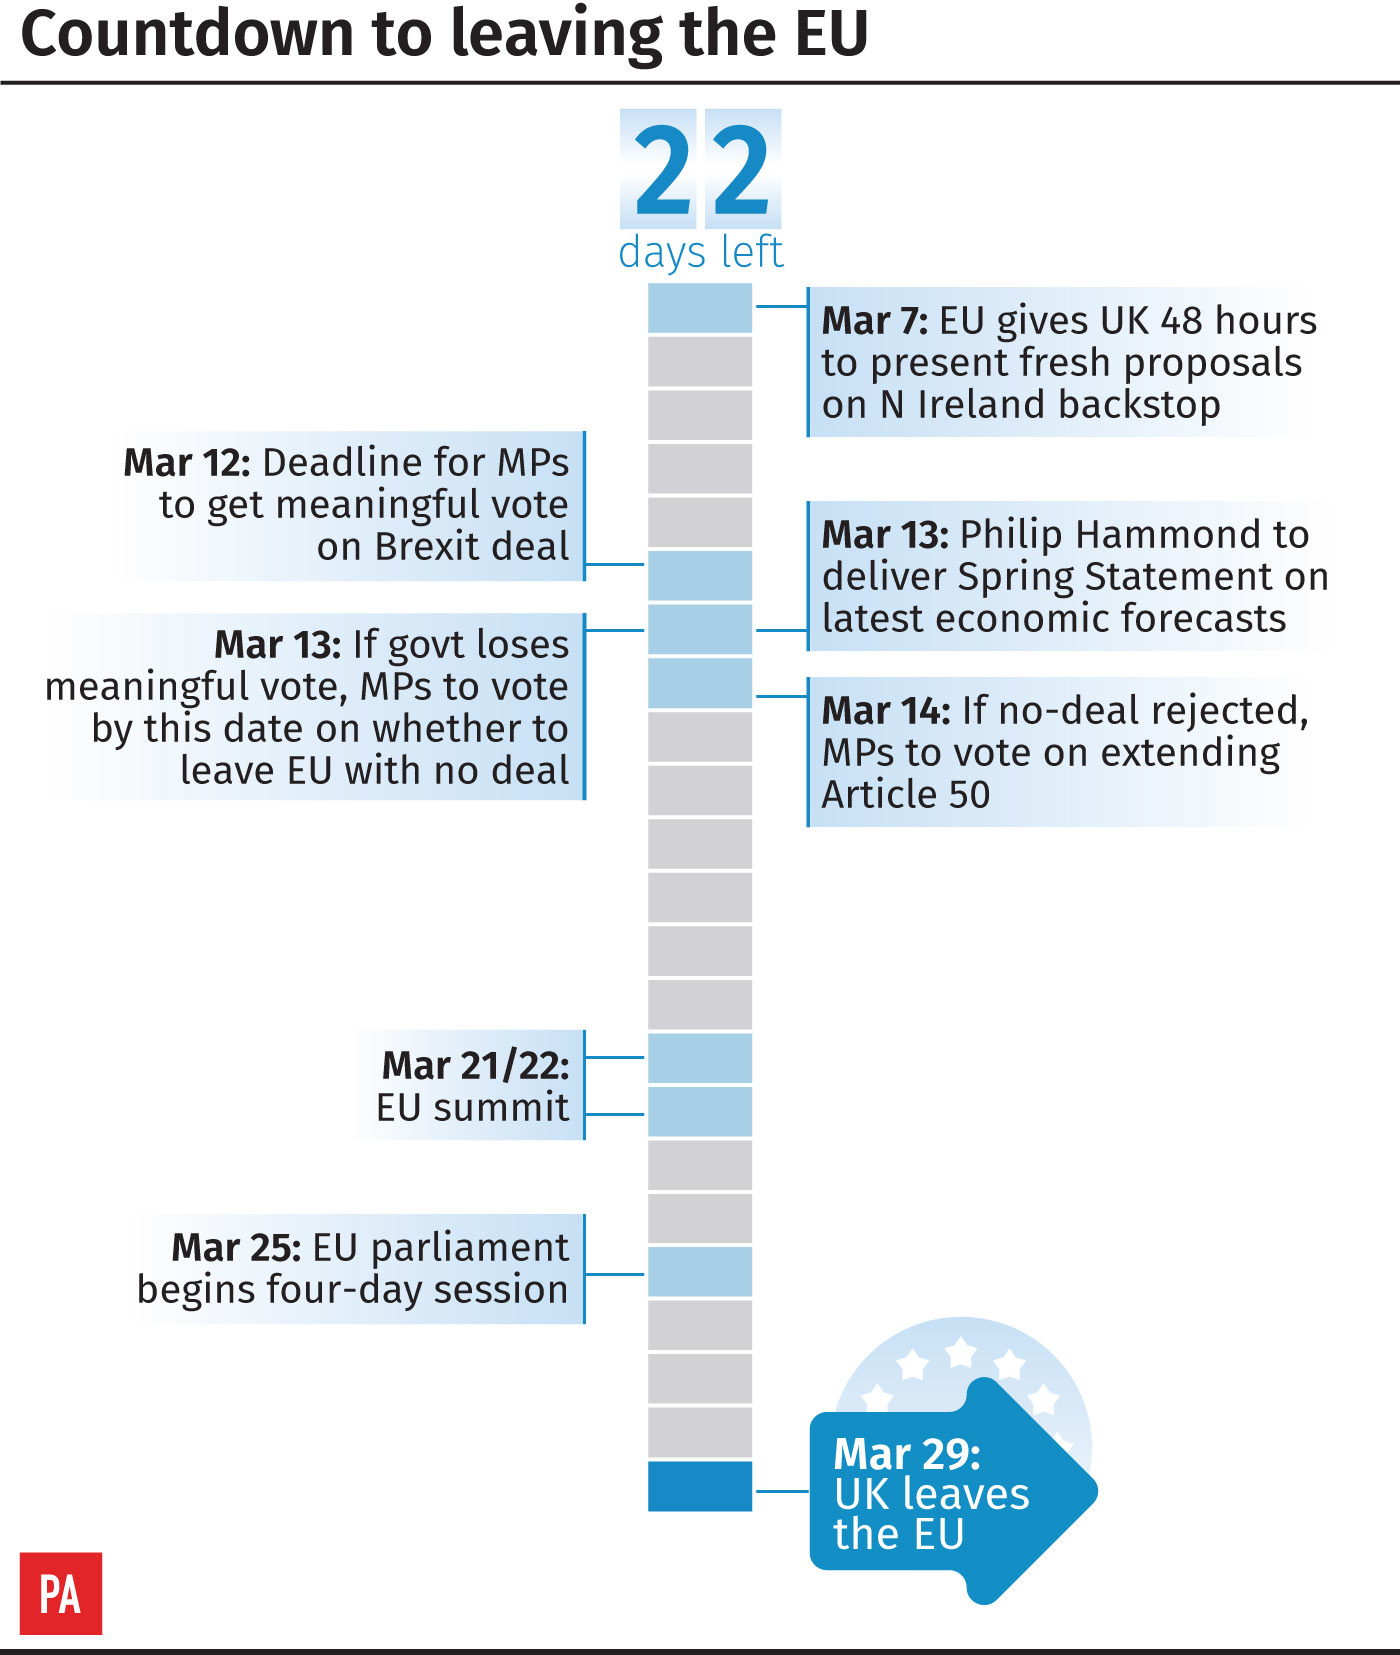 Countdown to leaving the EU graphic